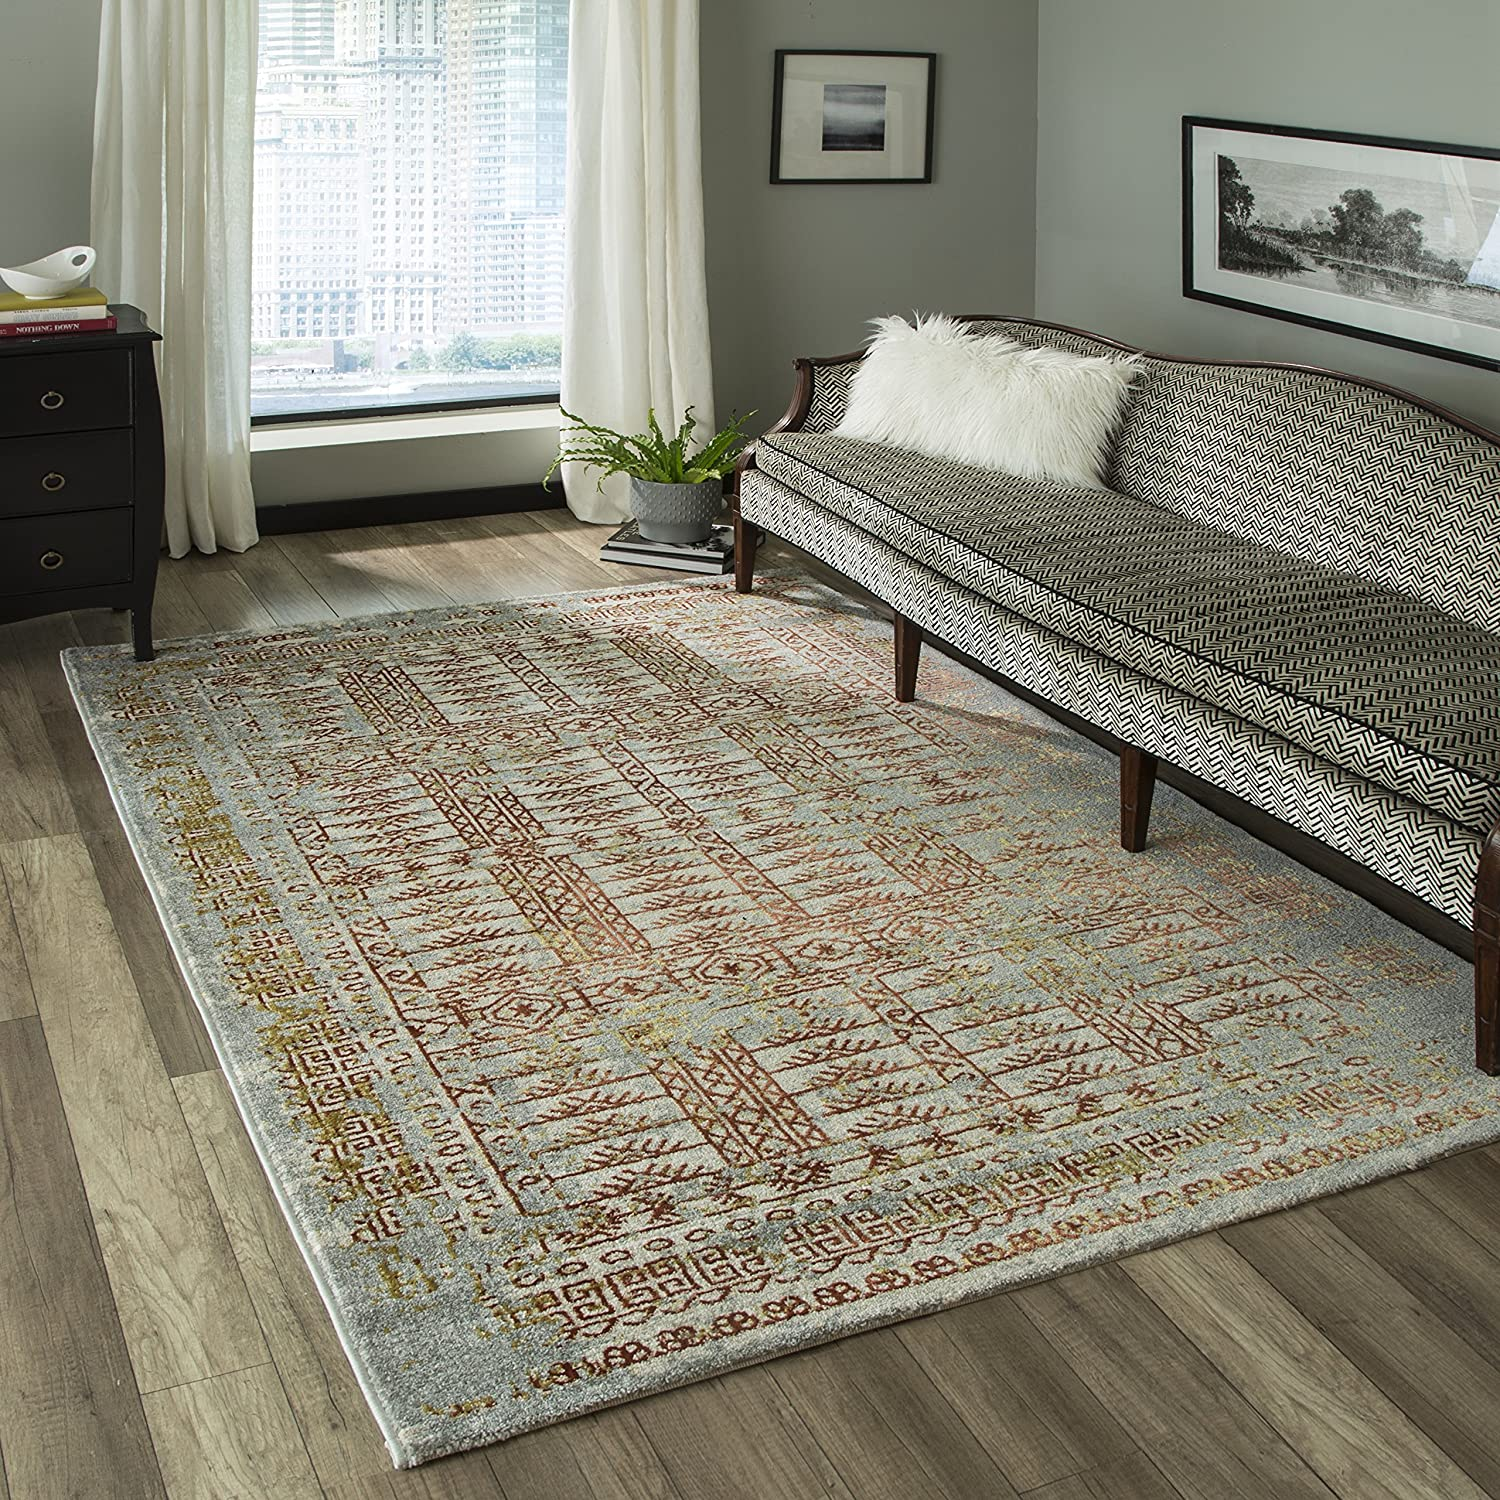 23 x 76 Momeni Rugs LUXE0LX-15RST2376 Luxe Collection Power-Loomed Contemporary Area Rug Rust 2/'3 x 7/'6 Inc.